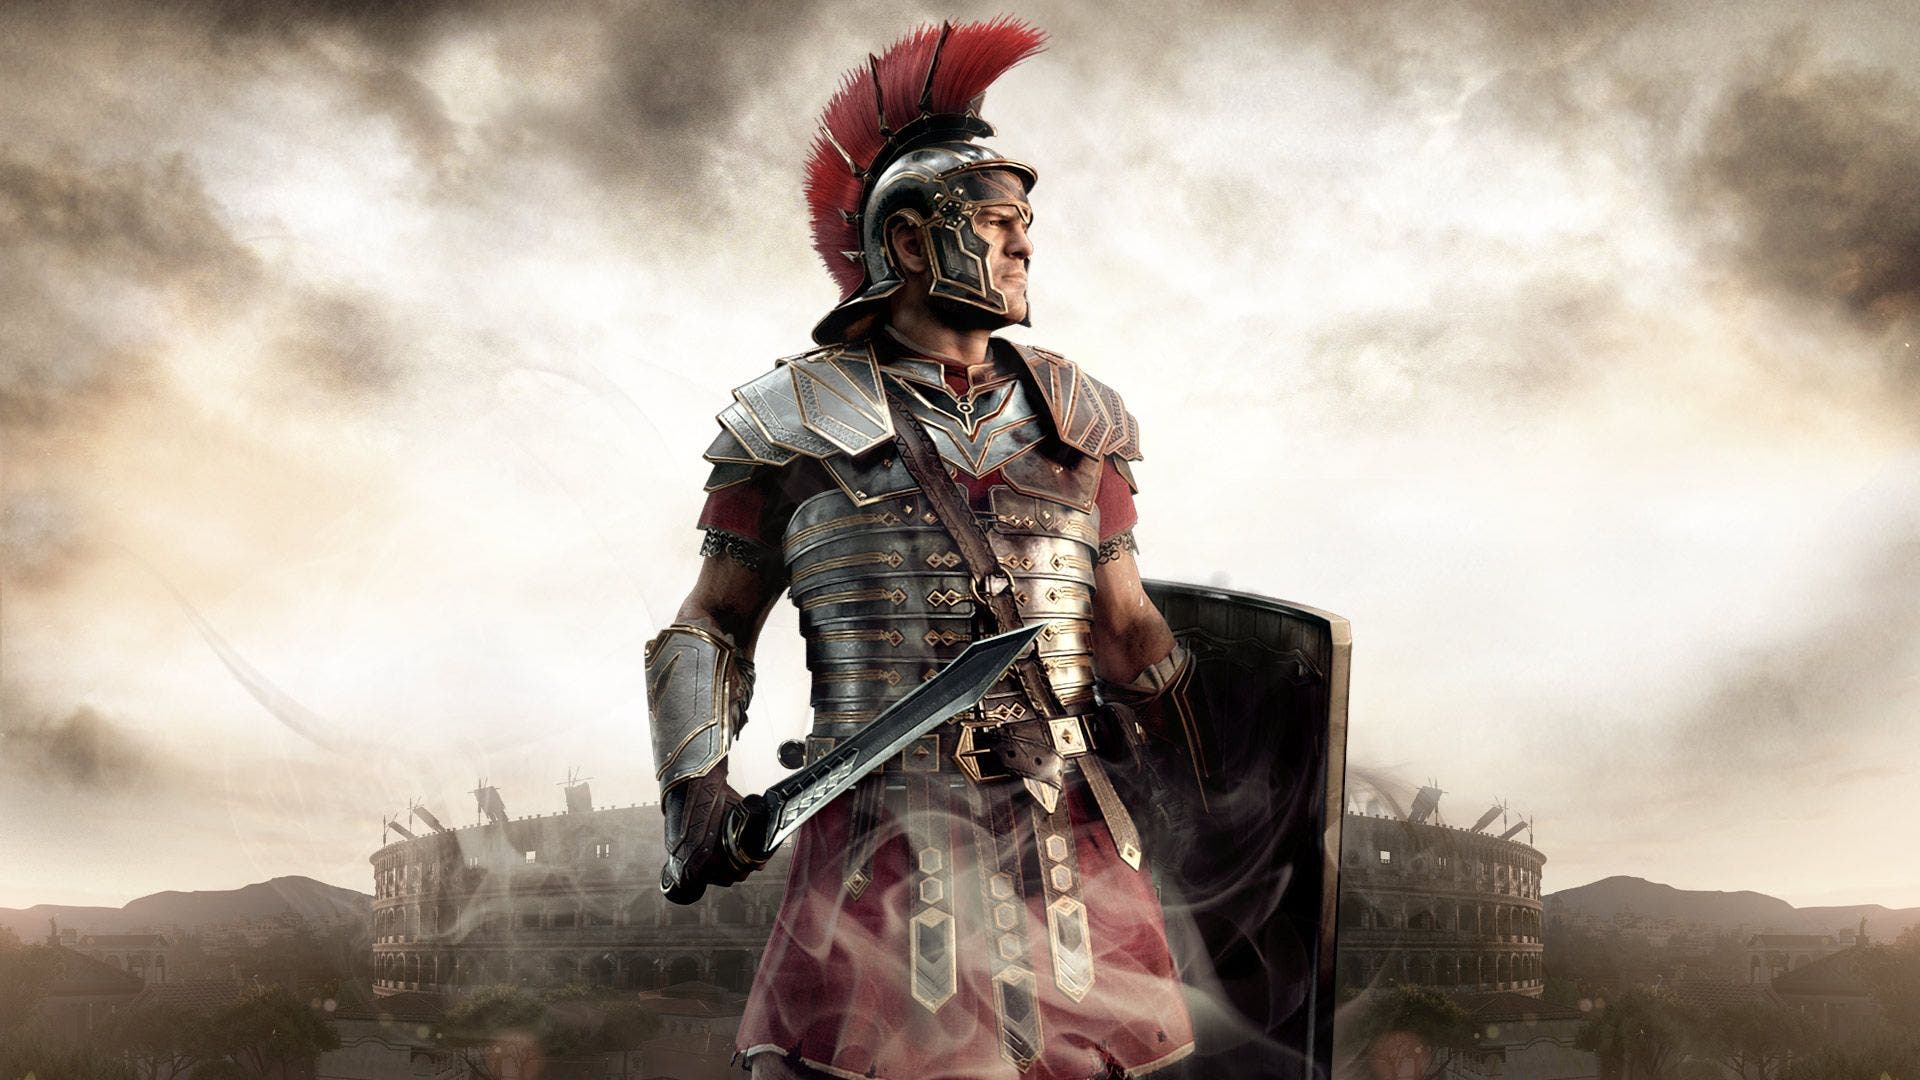 Hoy recordamos Ryse son of Rome